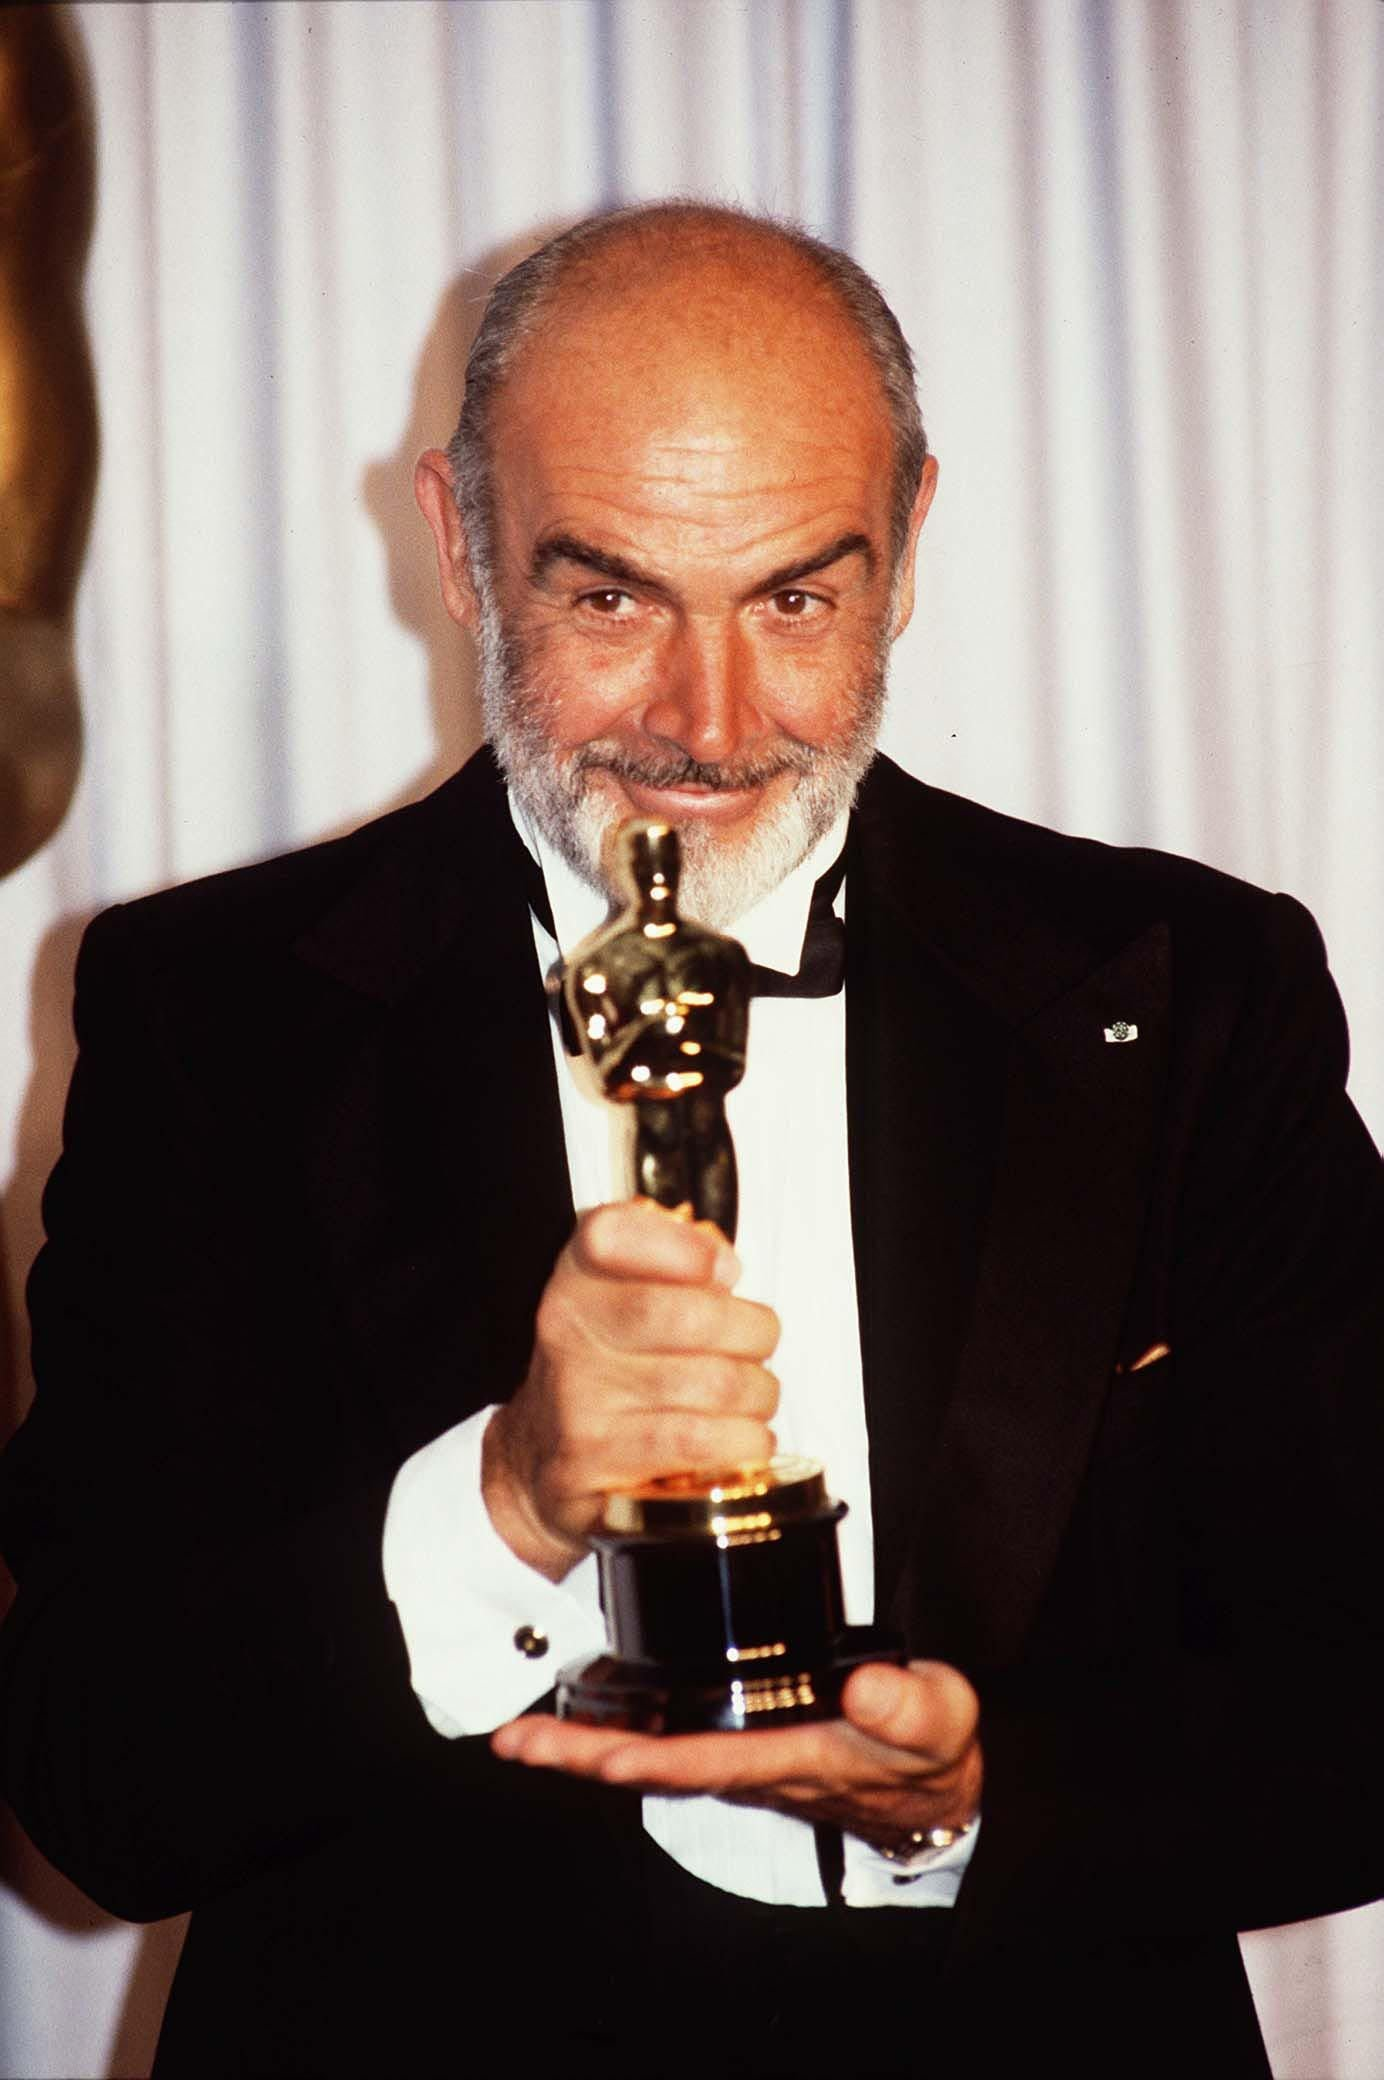 Scottish Actor Sean Connery holding an Academy Award for Best Actor in a Supporting Role iduring the 1988 Oscars Ceremony | Photo: Photoshot/Getty Images